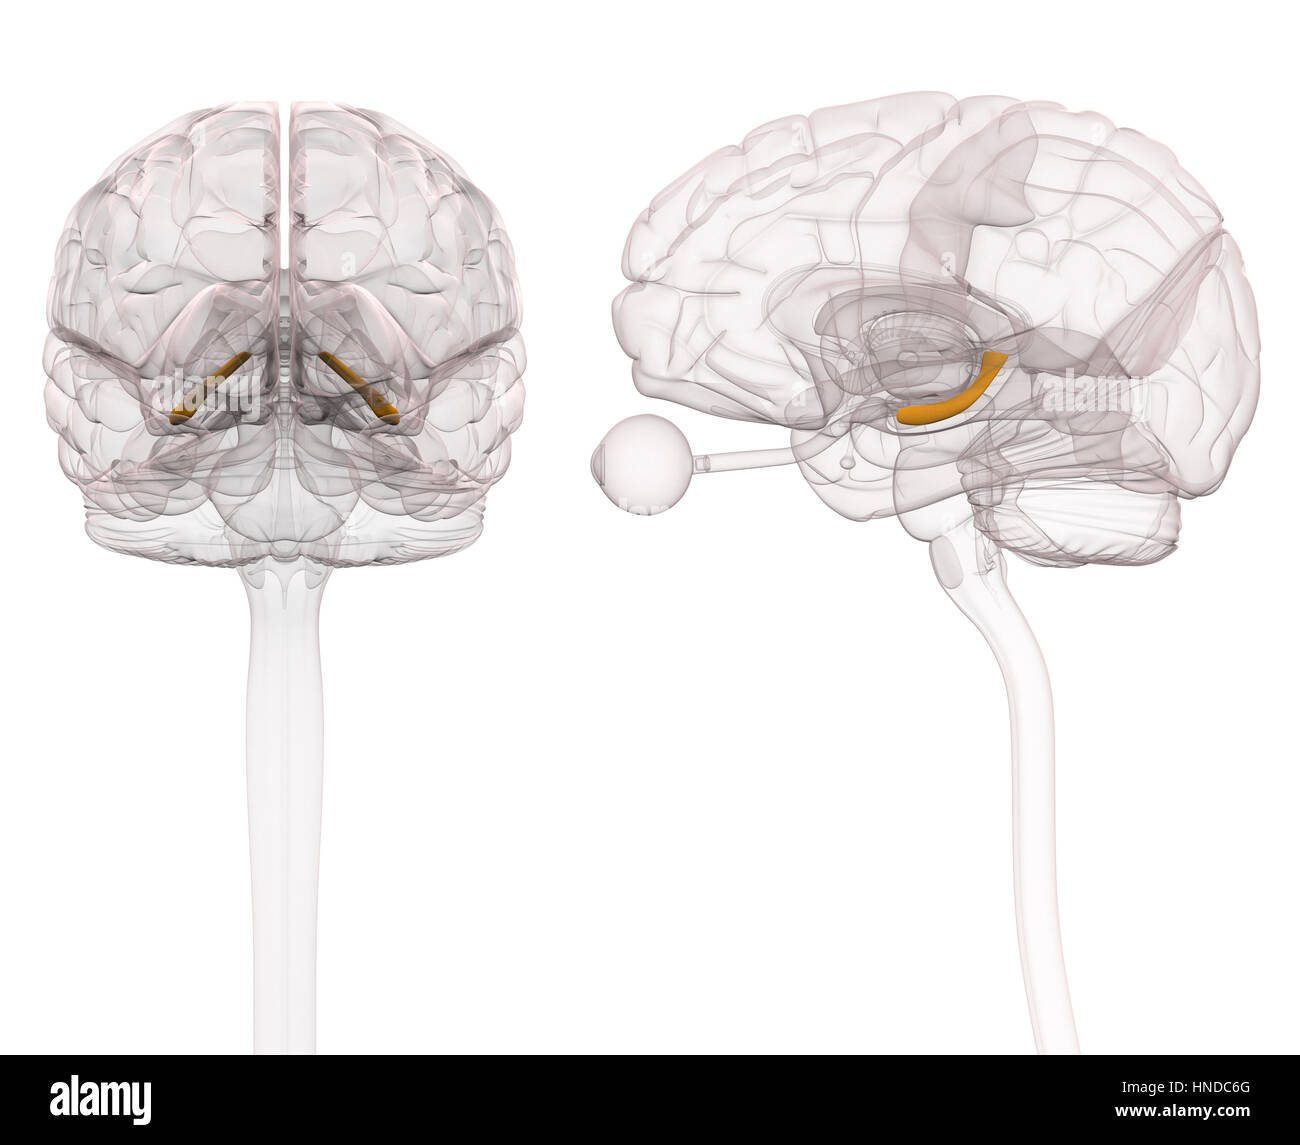 Anatomie des Gehirns Hippocampus - 3D-Illustration Stockfoto, Bild ...